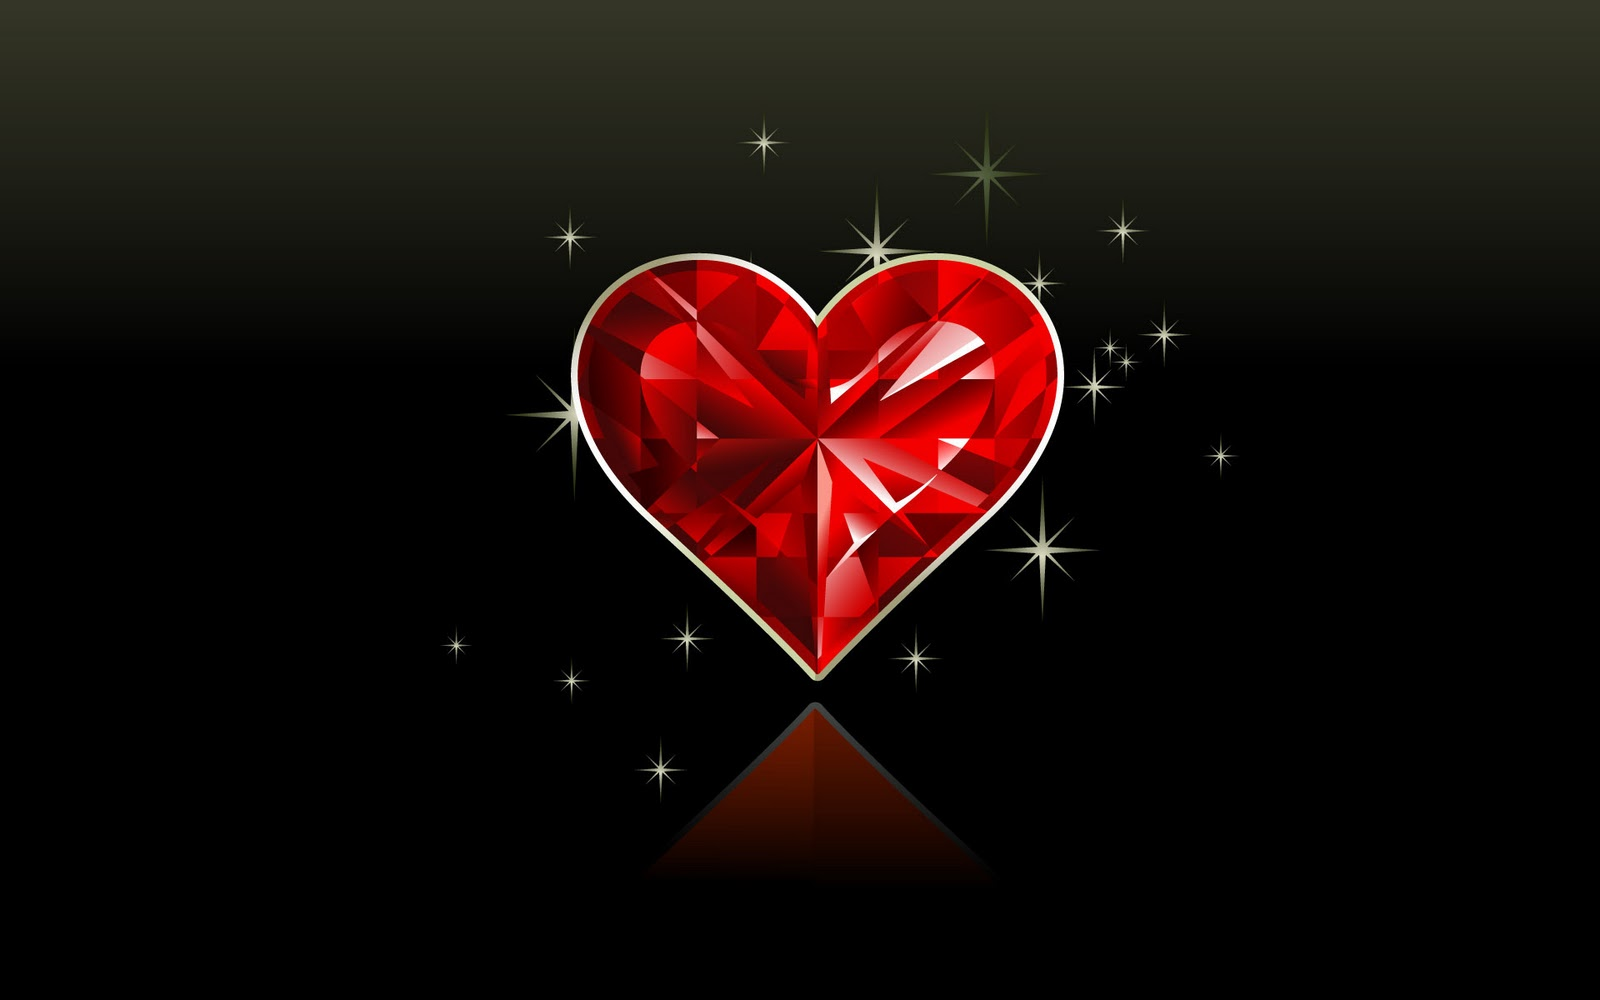 Love Latest Wallpapers For Mobile : Love Wallpaper 4 Mobile New hd wallon